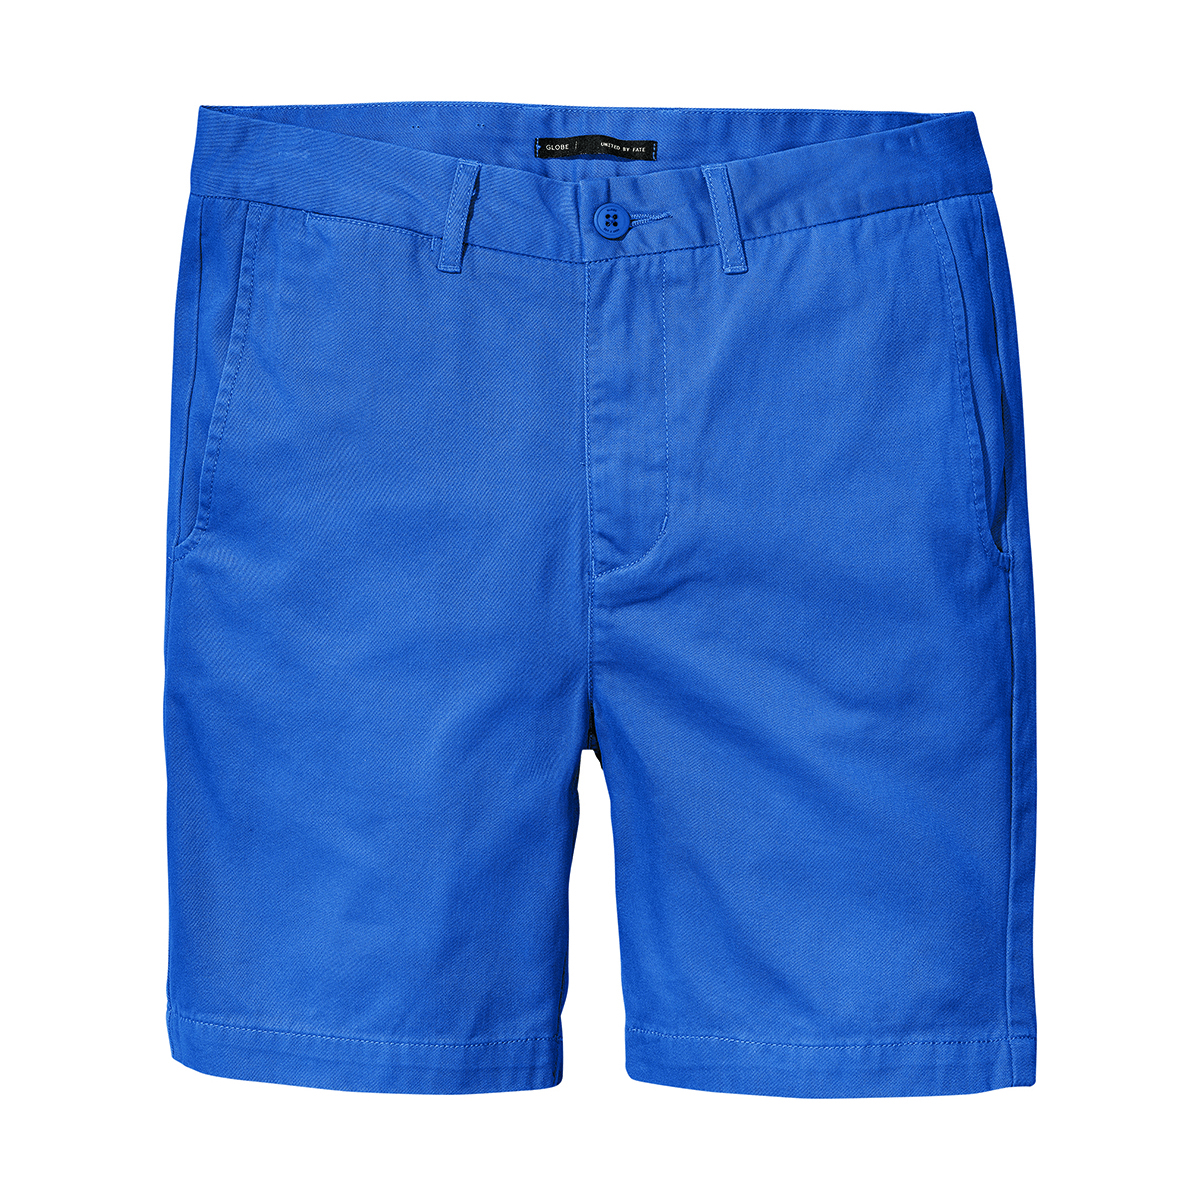 GLOBE Goodstock Mens Chino Walkshorts